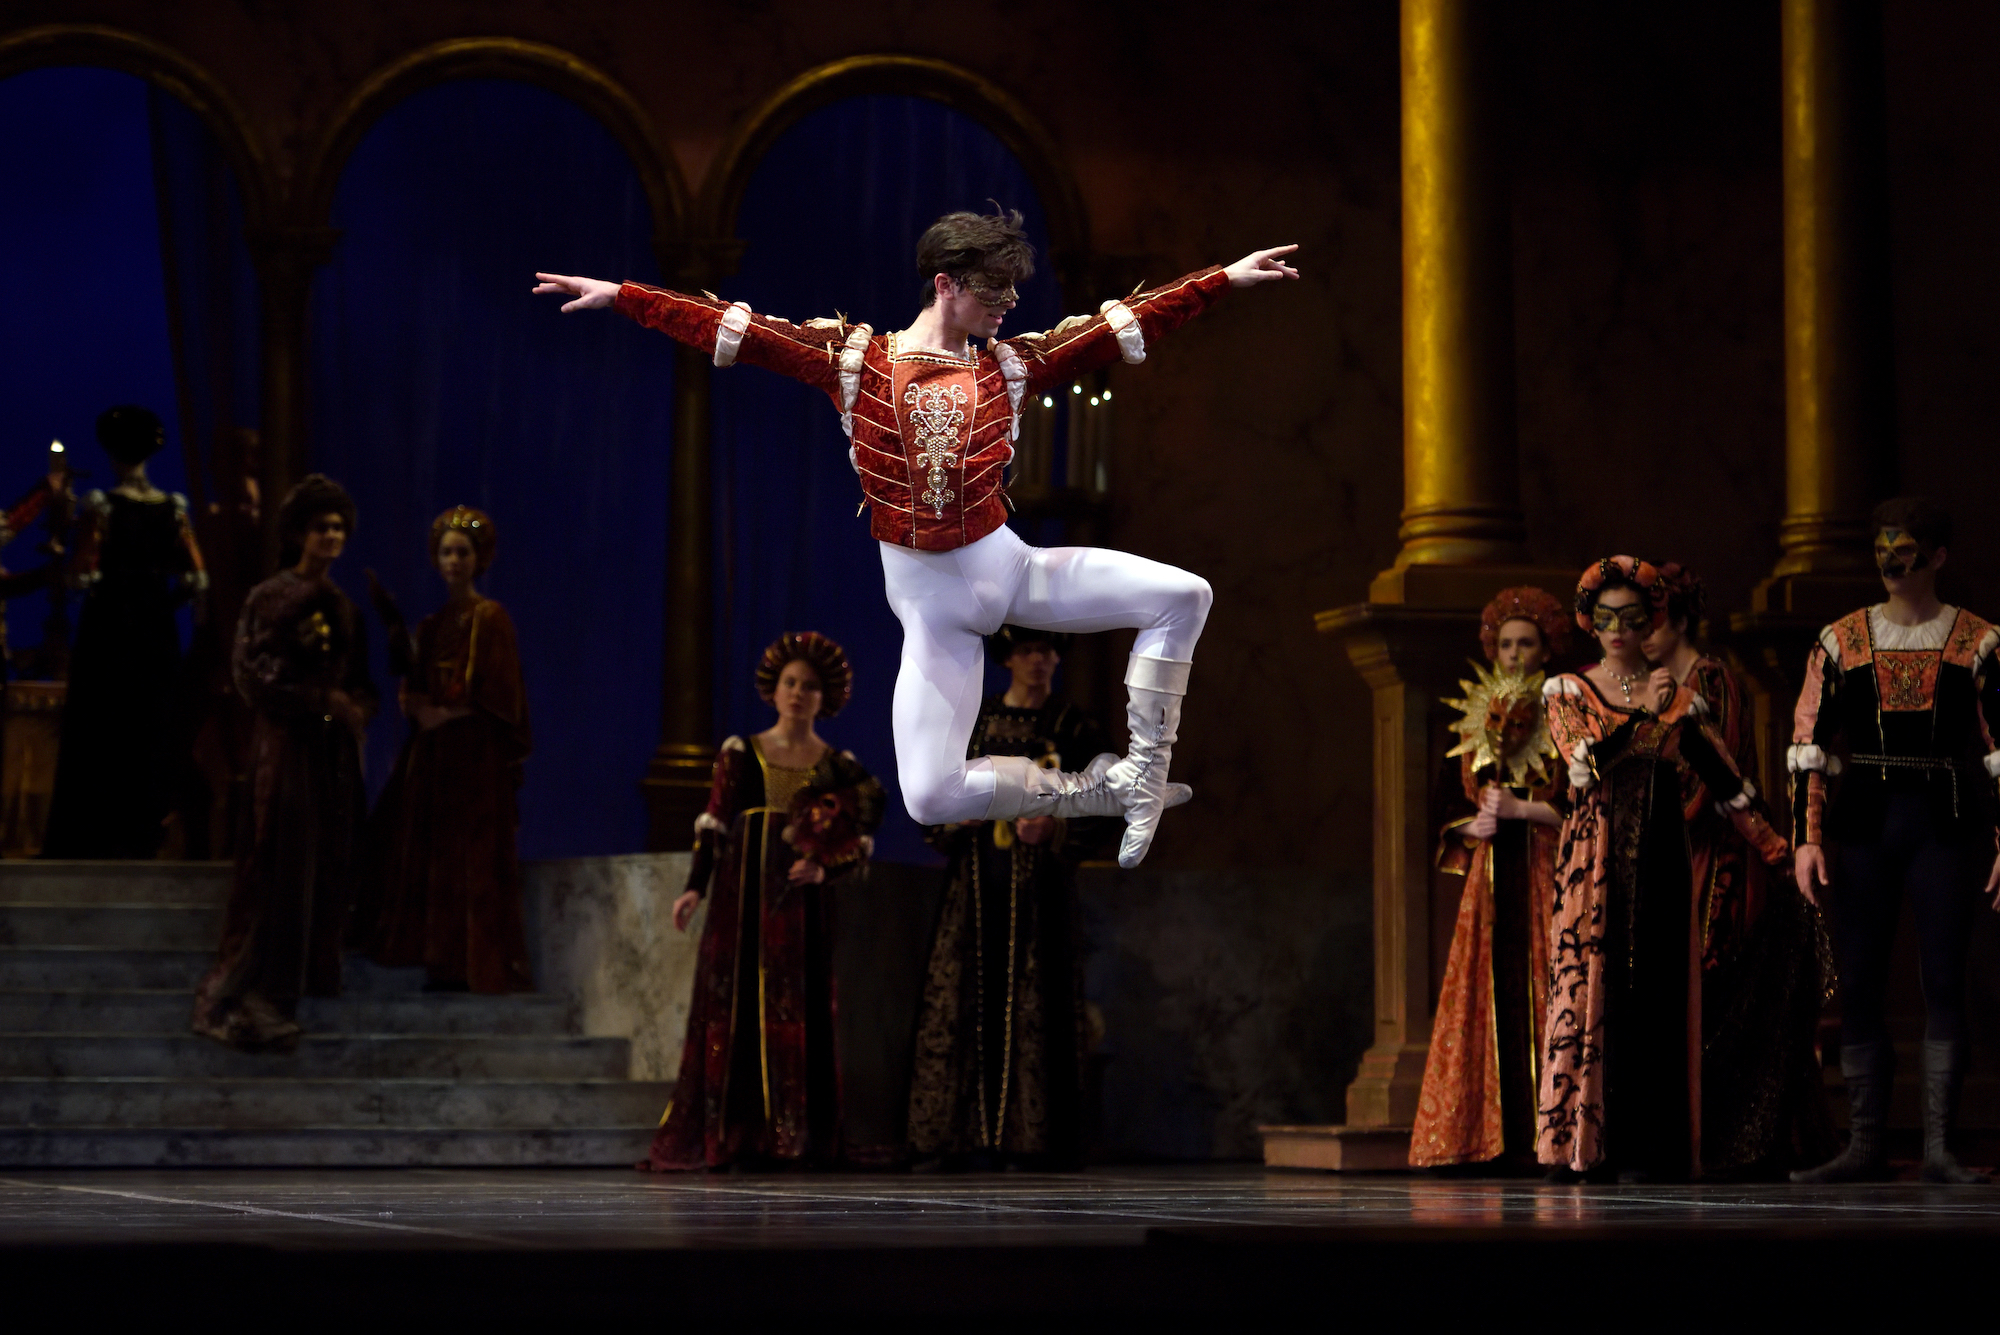 San Francisco Ballet in Tomasson's Romeo & Juliet. (© Erik Tomasson)